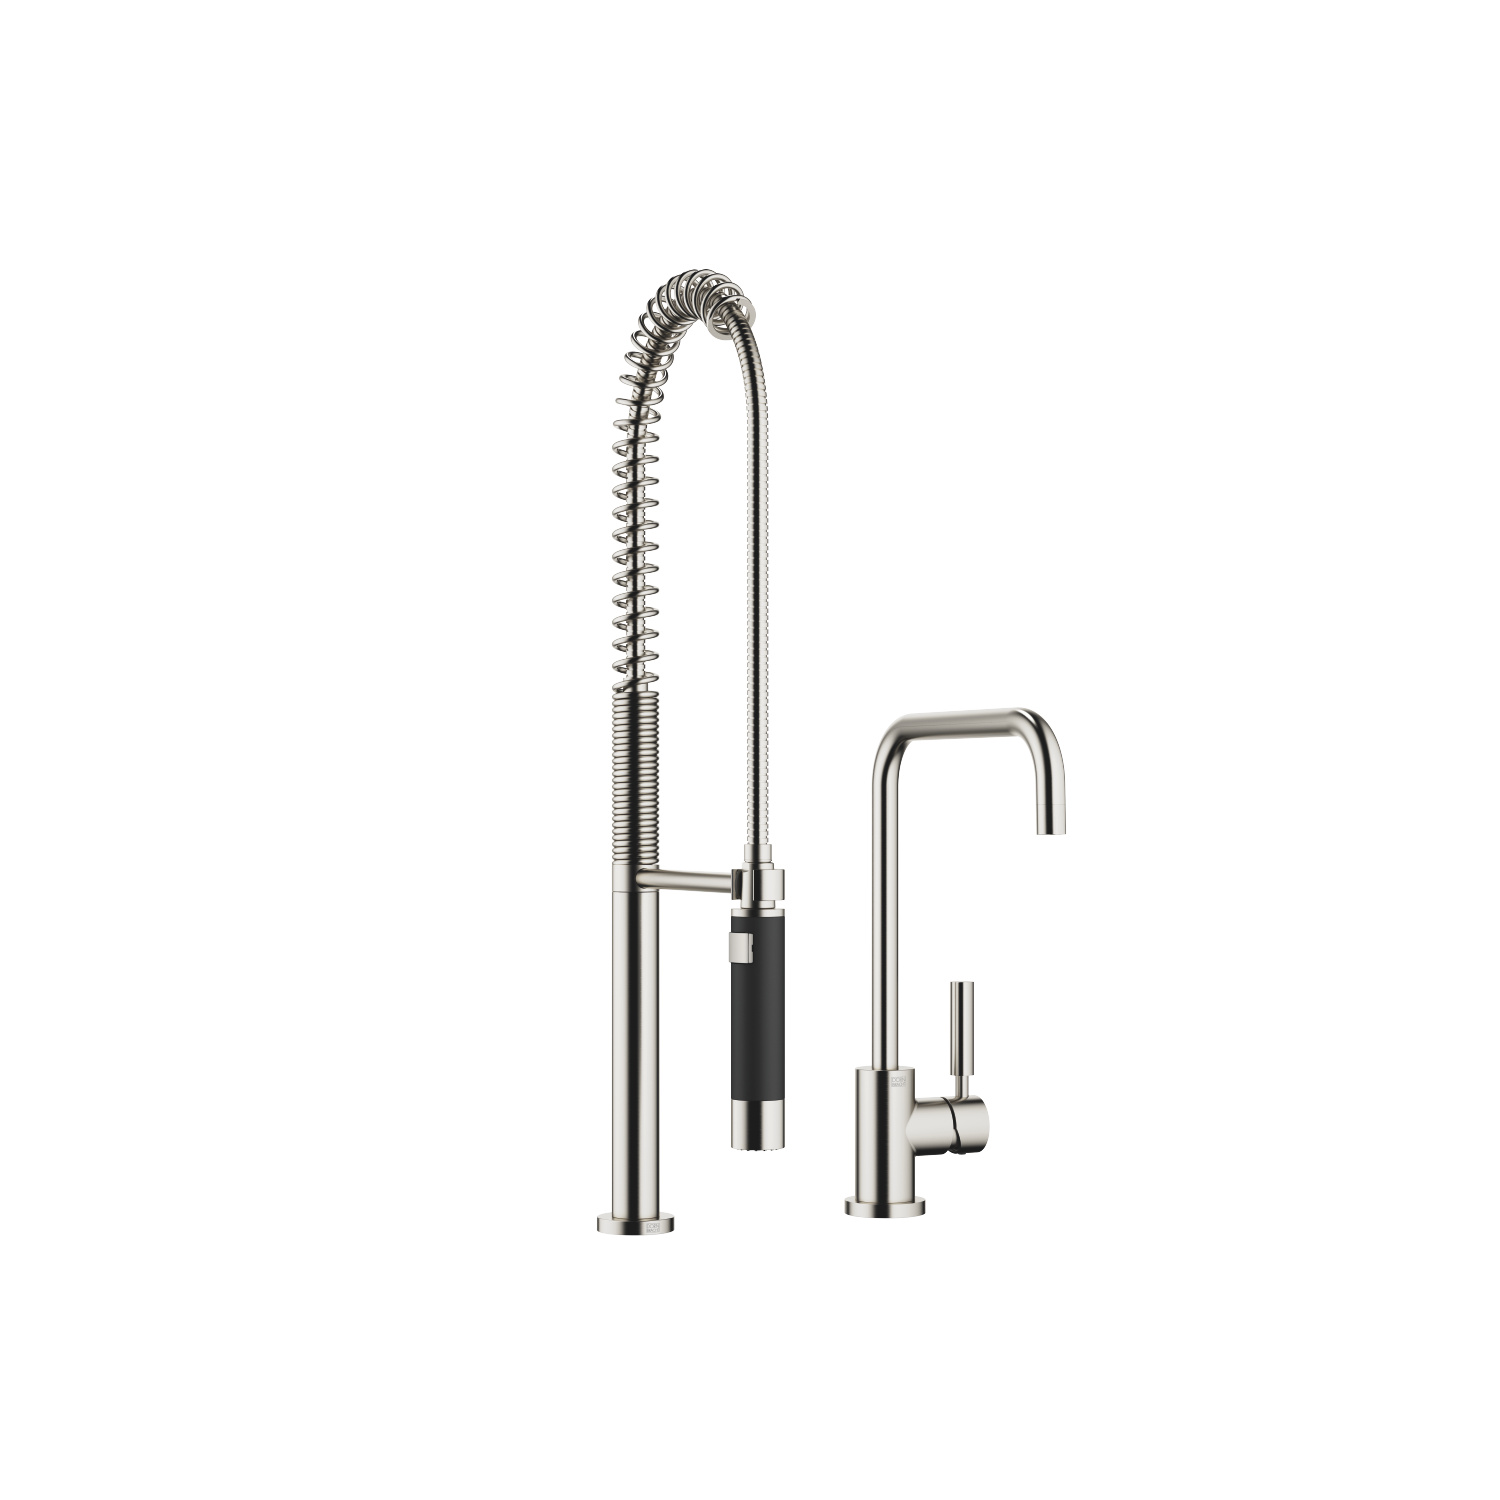 Single-lever mixer with profi spray set - platinum matt